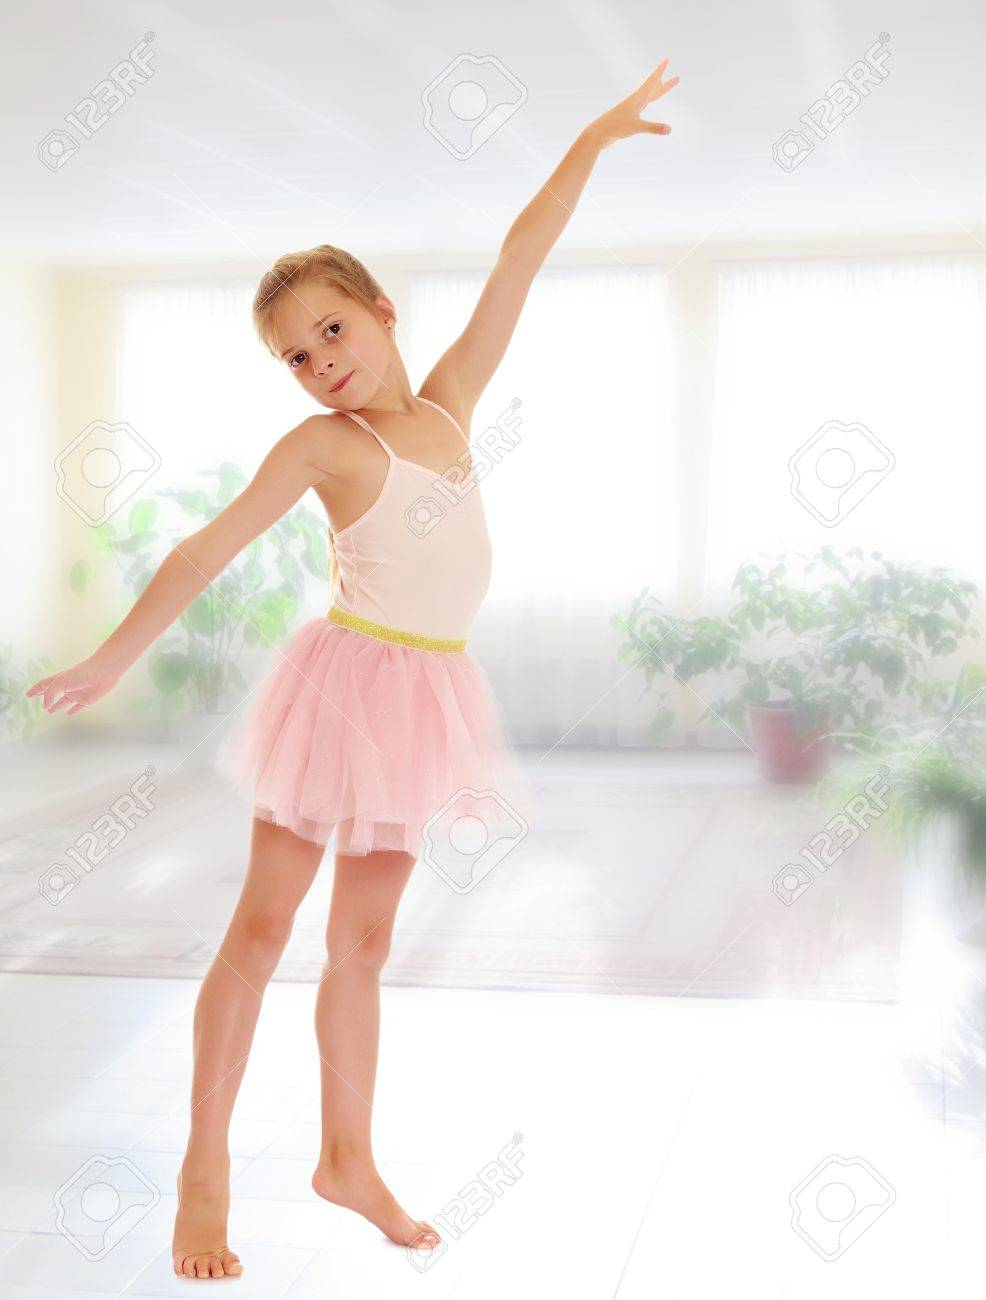 charming little girl ballerina in a pink translucent dress on